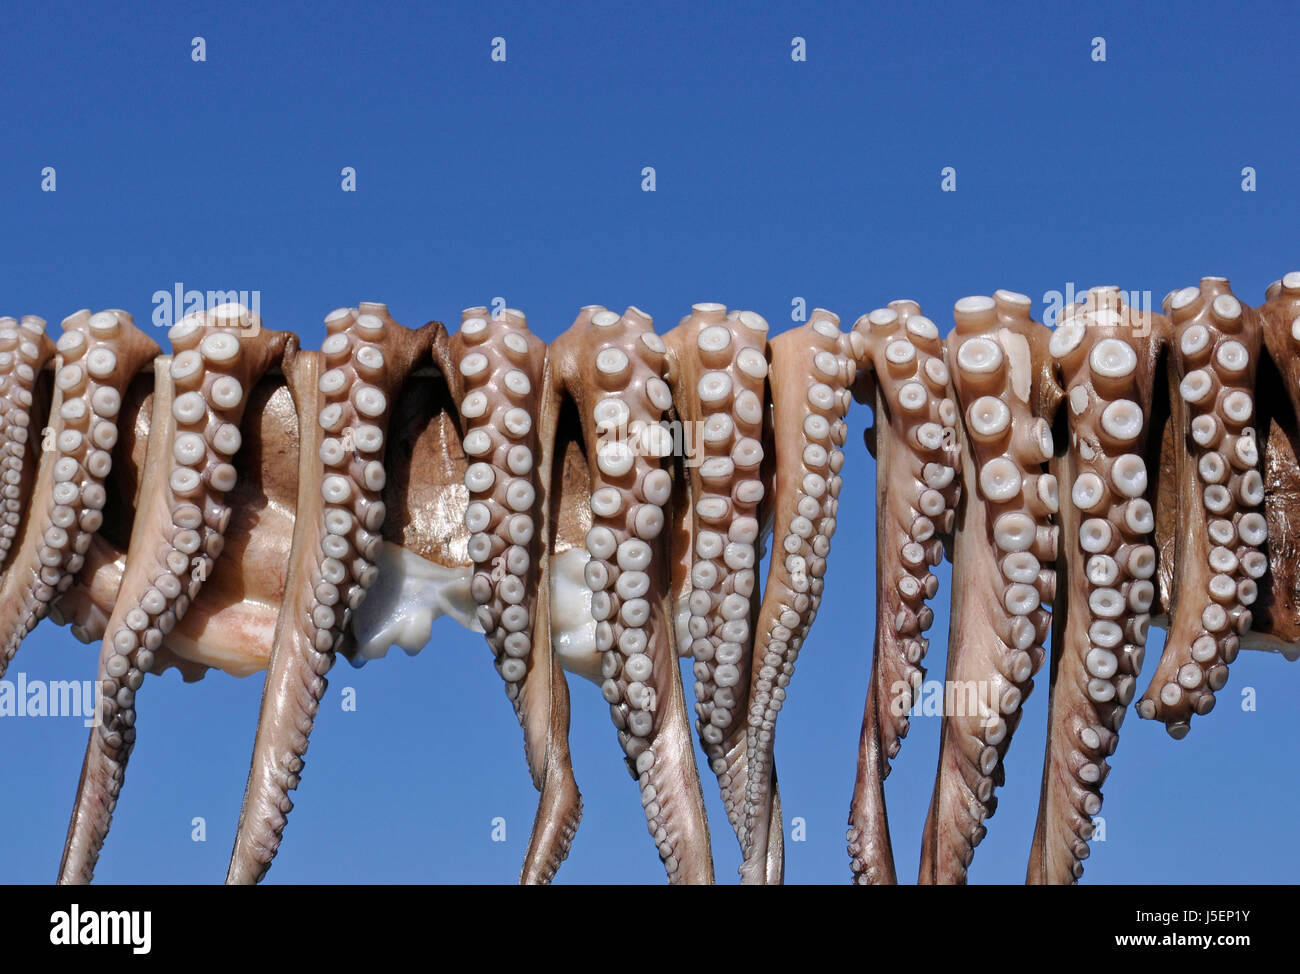 Octopuses in a row hanging to dry - Stock Image